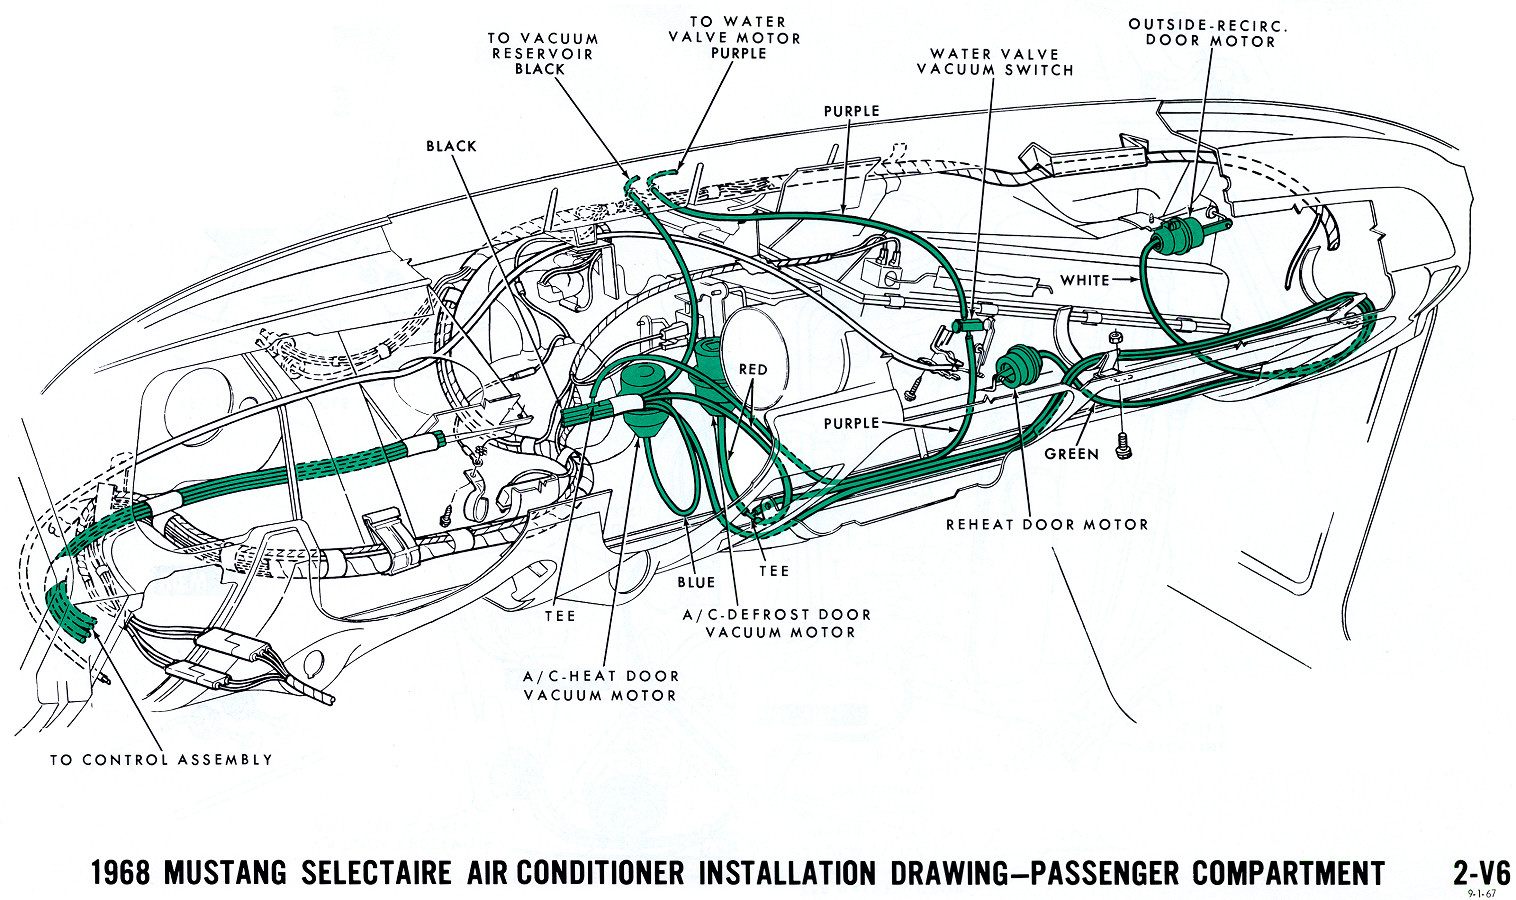 1968 mustang vacuum diagram air conditioning interior 1968 mustang wiring diagrams and vacuum schematics average joe 1972 mg midget wiring diagram at pacquiaovsvargaslive.co